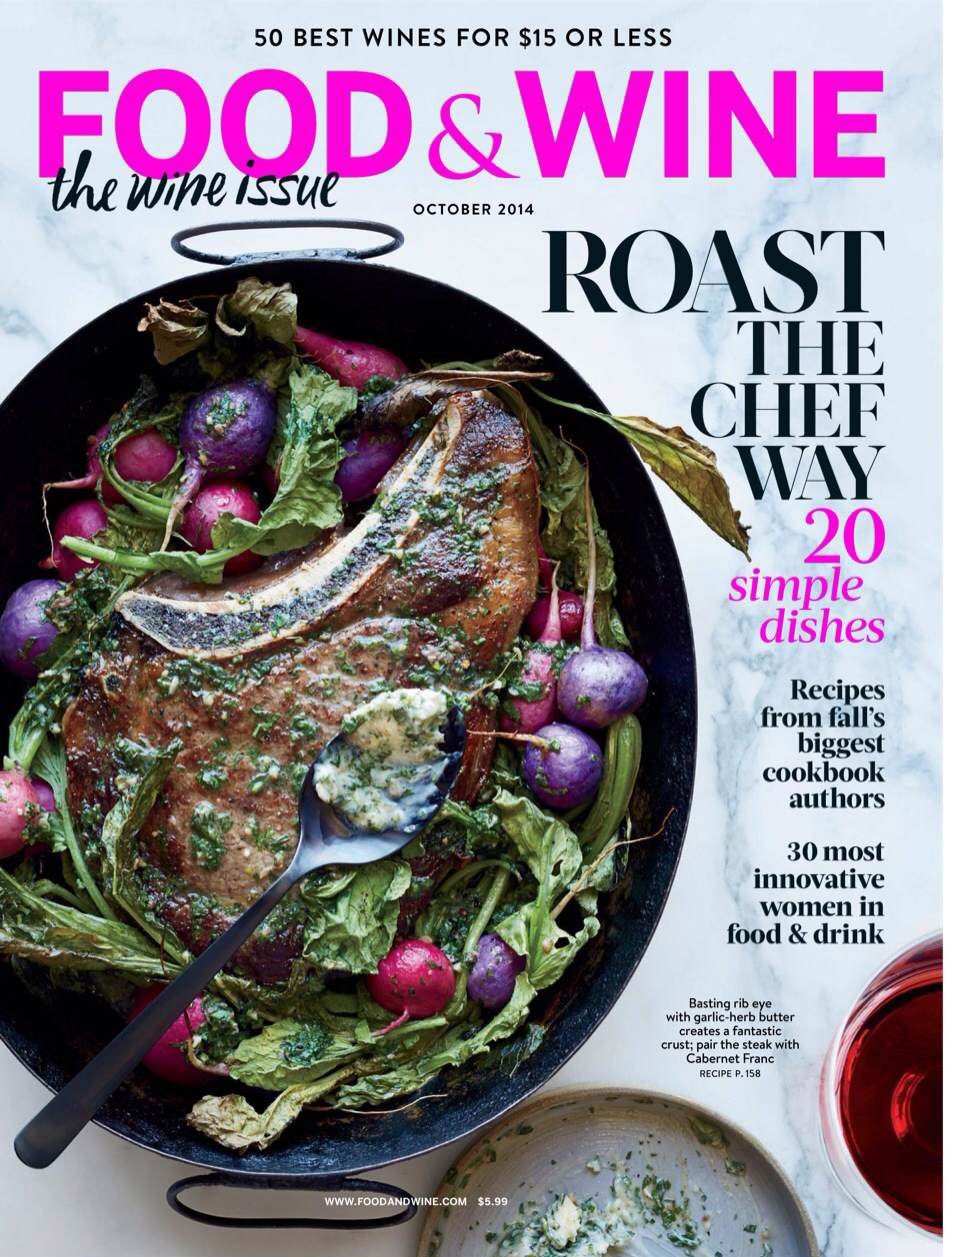 Image of cover for Food and Wine issue, October 2014